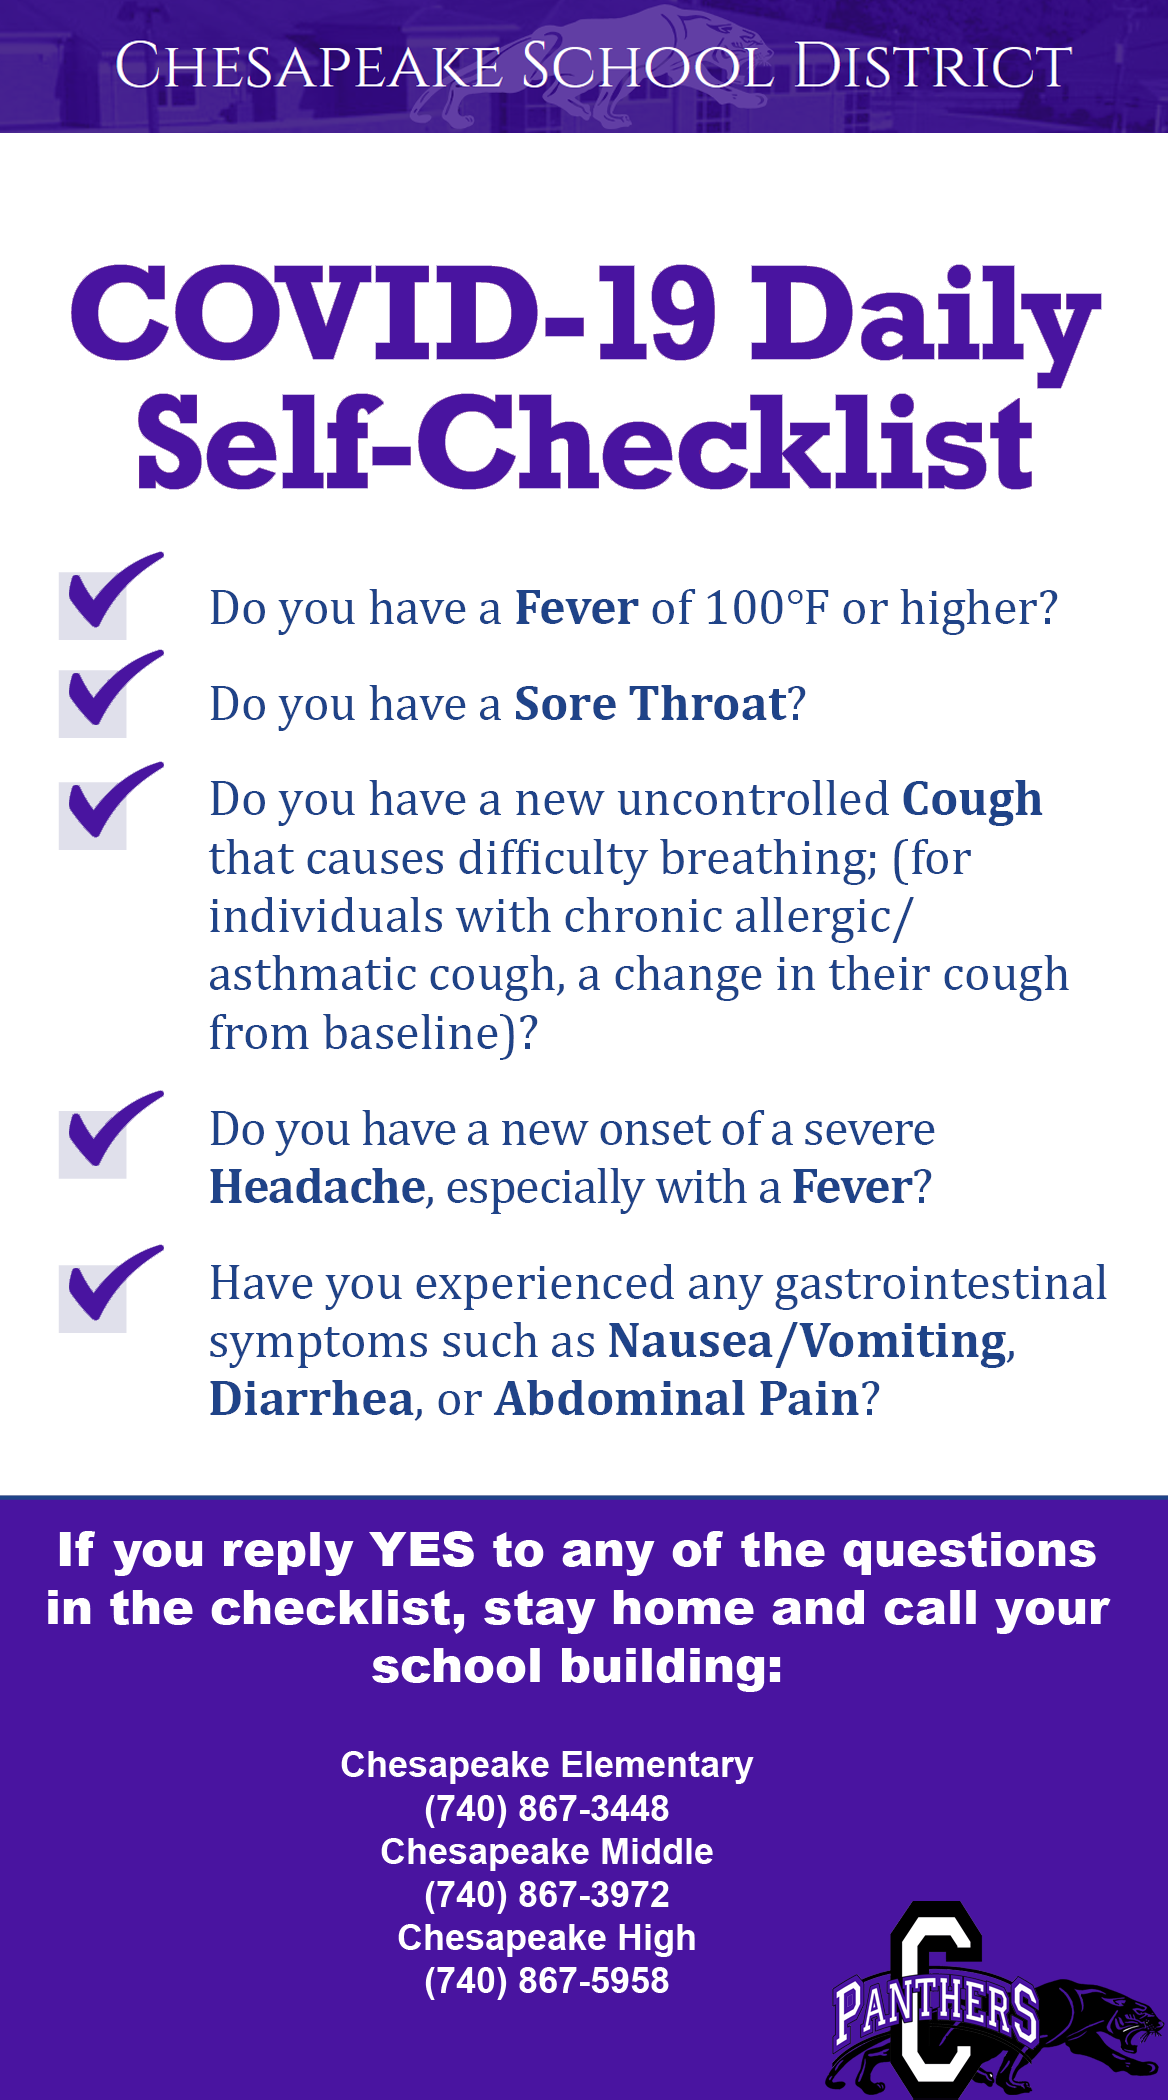 Contact buildings if COVID exposure or symptoms